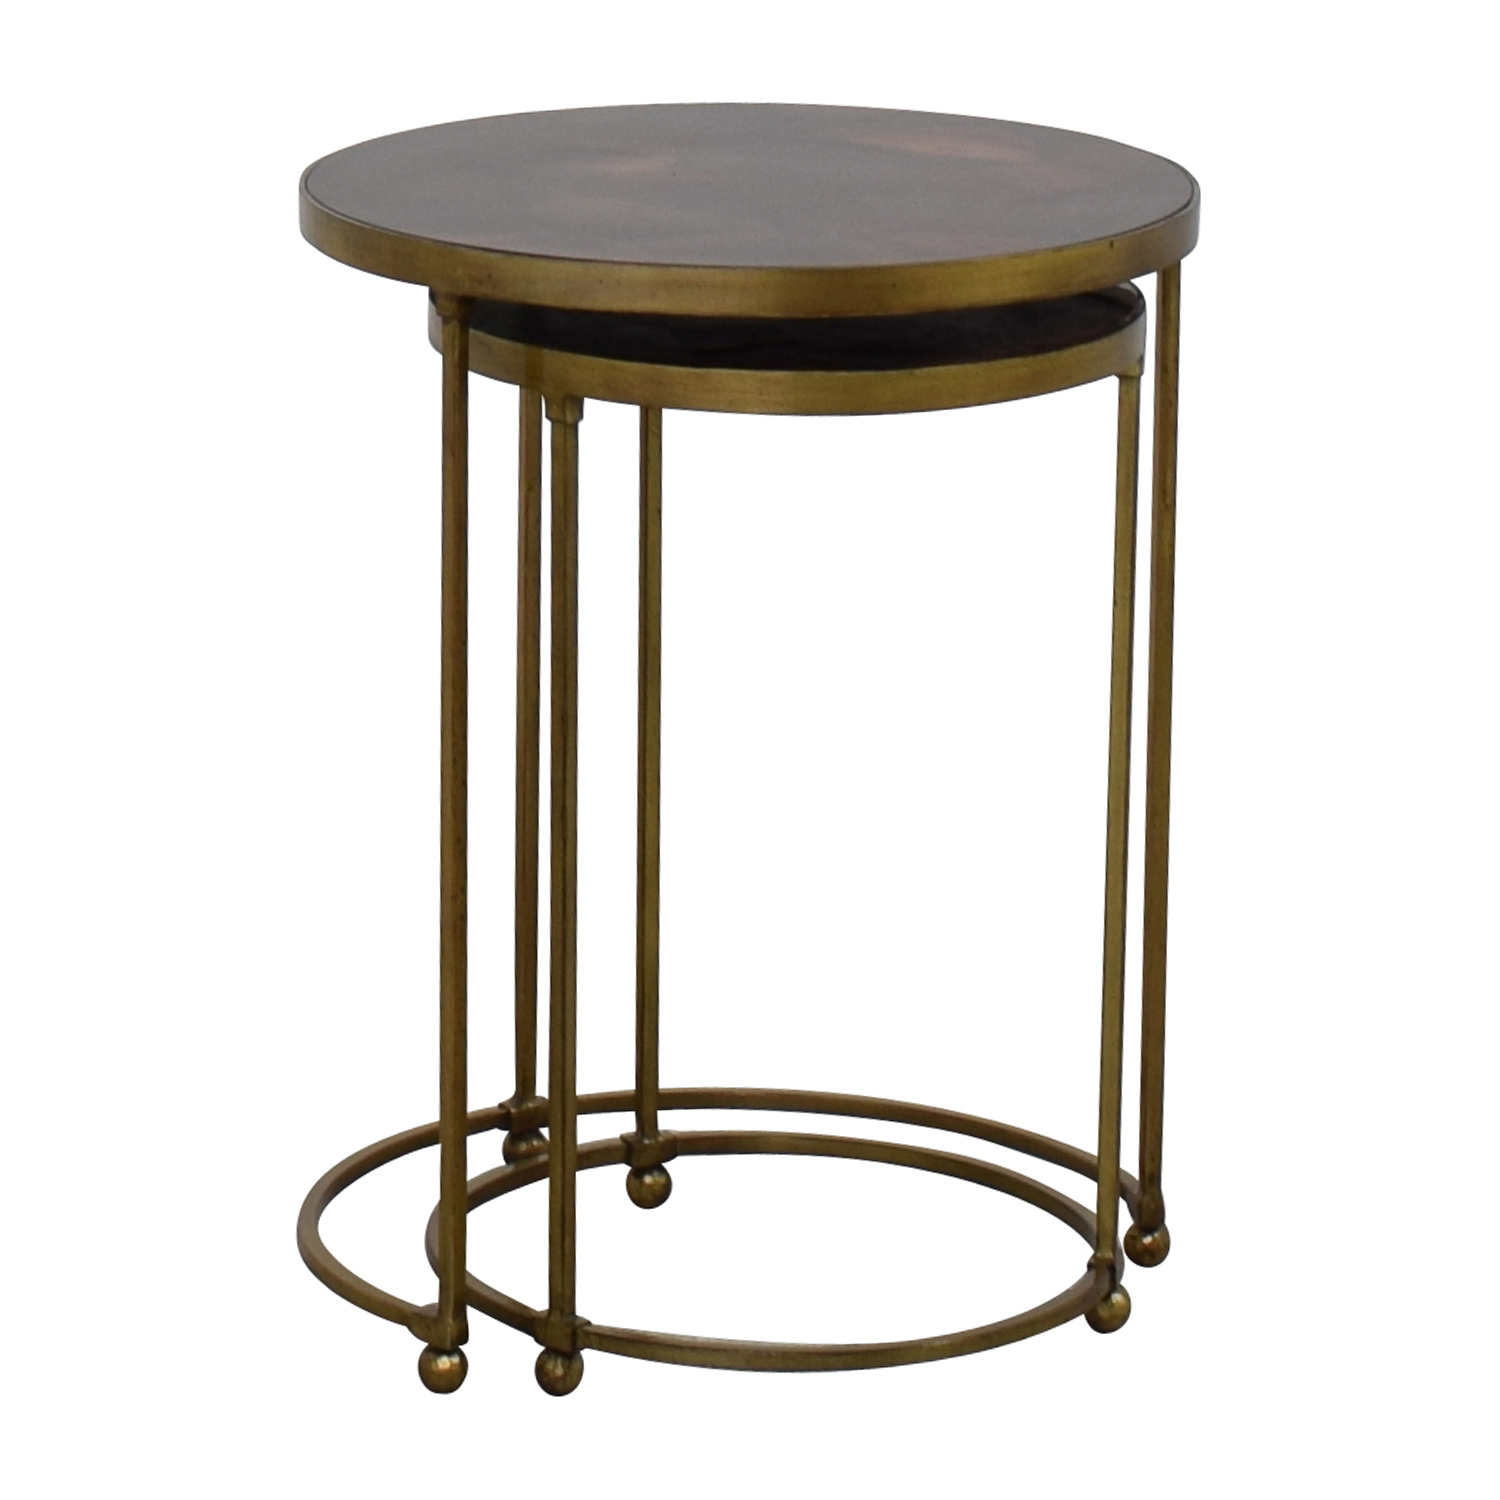 ABC Carpet and Home ABC Carpet & Home Nesting Round Bronze and Brass Accent Tables Bronze and Brown